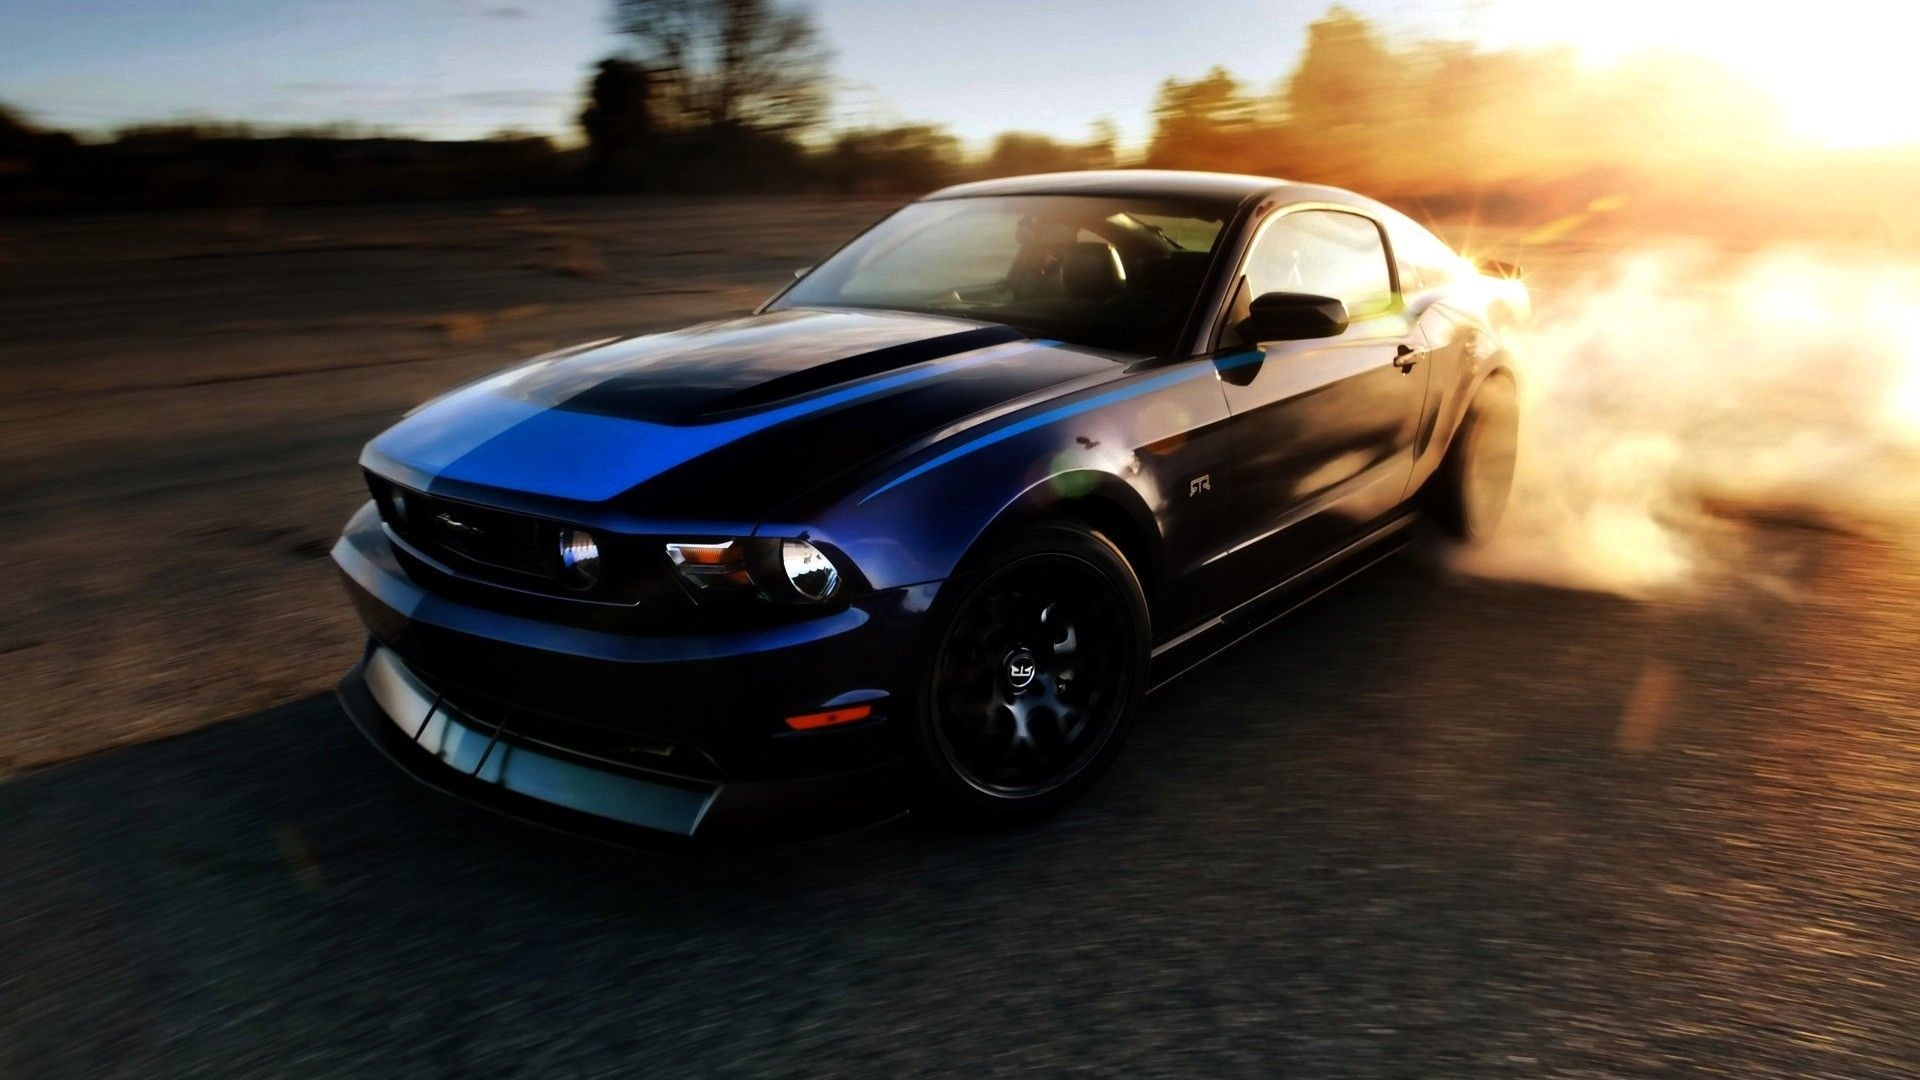 Shelby Mustang Wallpaper HD #t9O